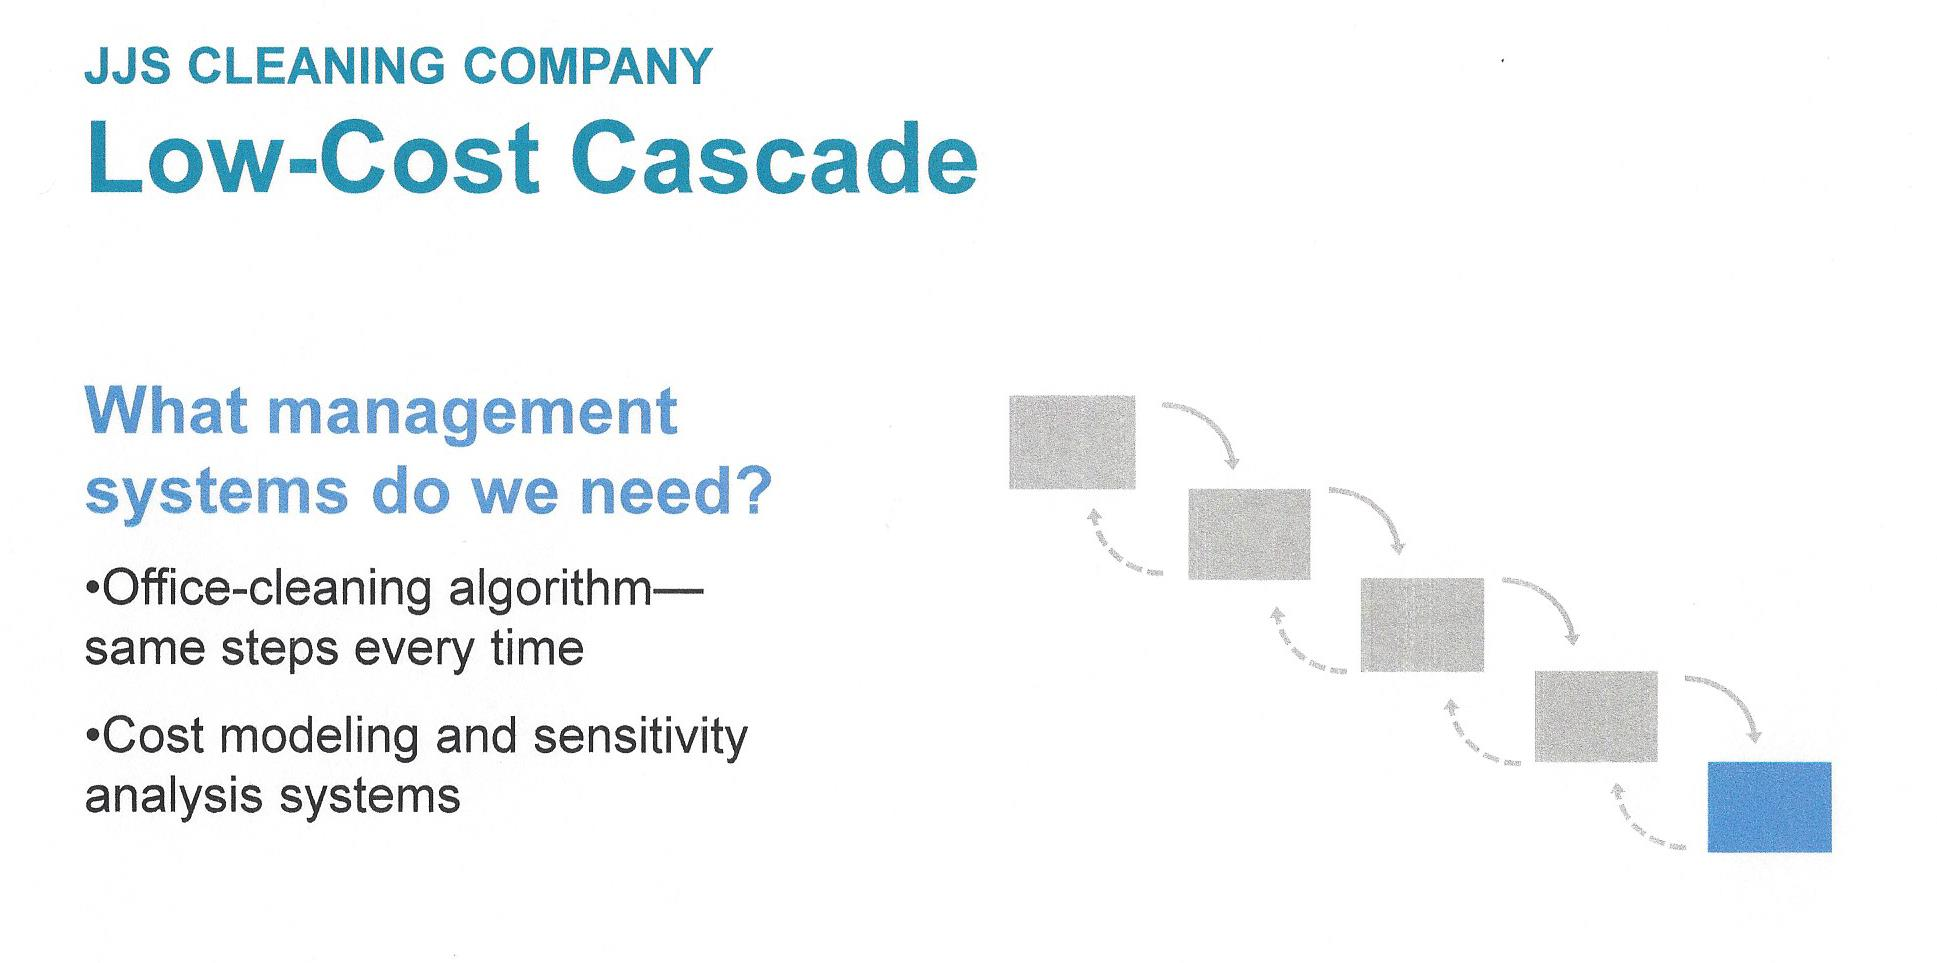 Play to Win - Low-Cost Cascade - Management Systems